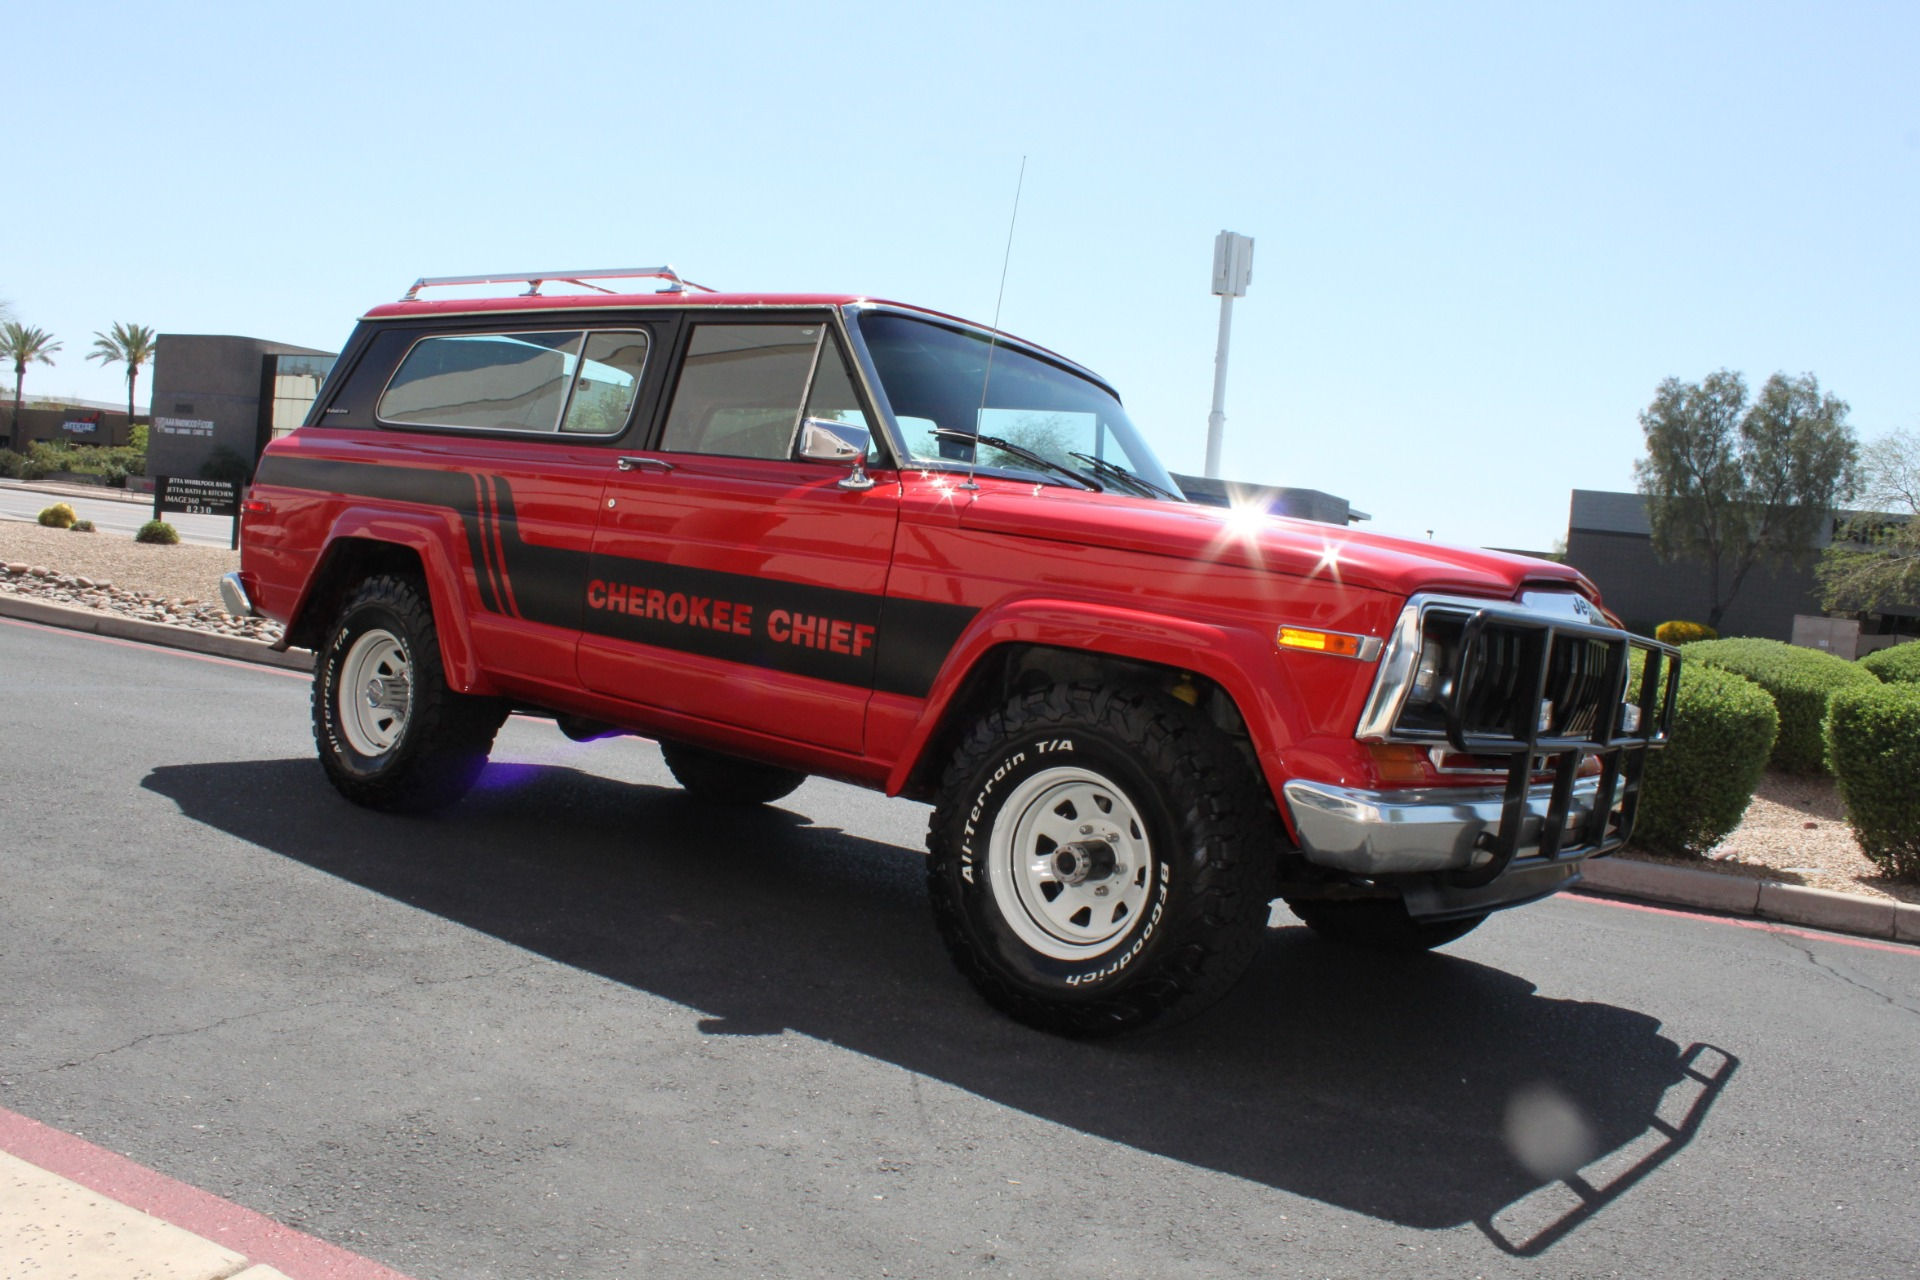 Used-1983-Jeep-Cherokee-Chief-4WD-Chevrolet